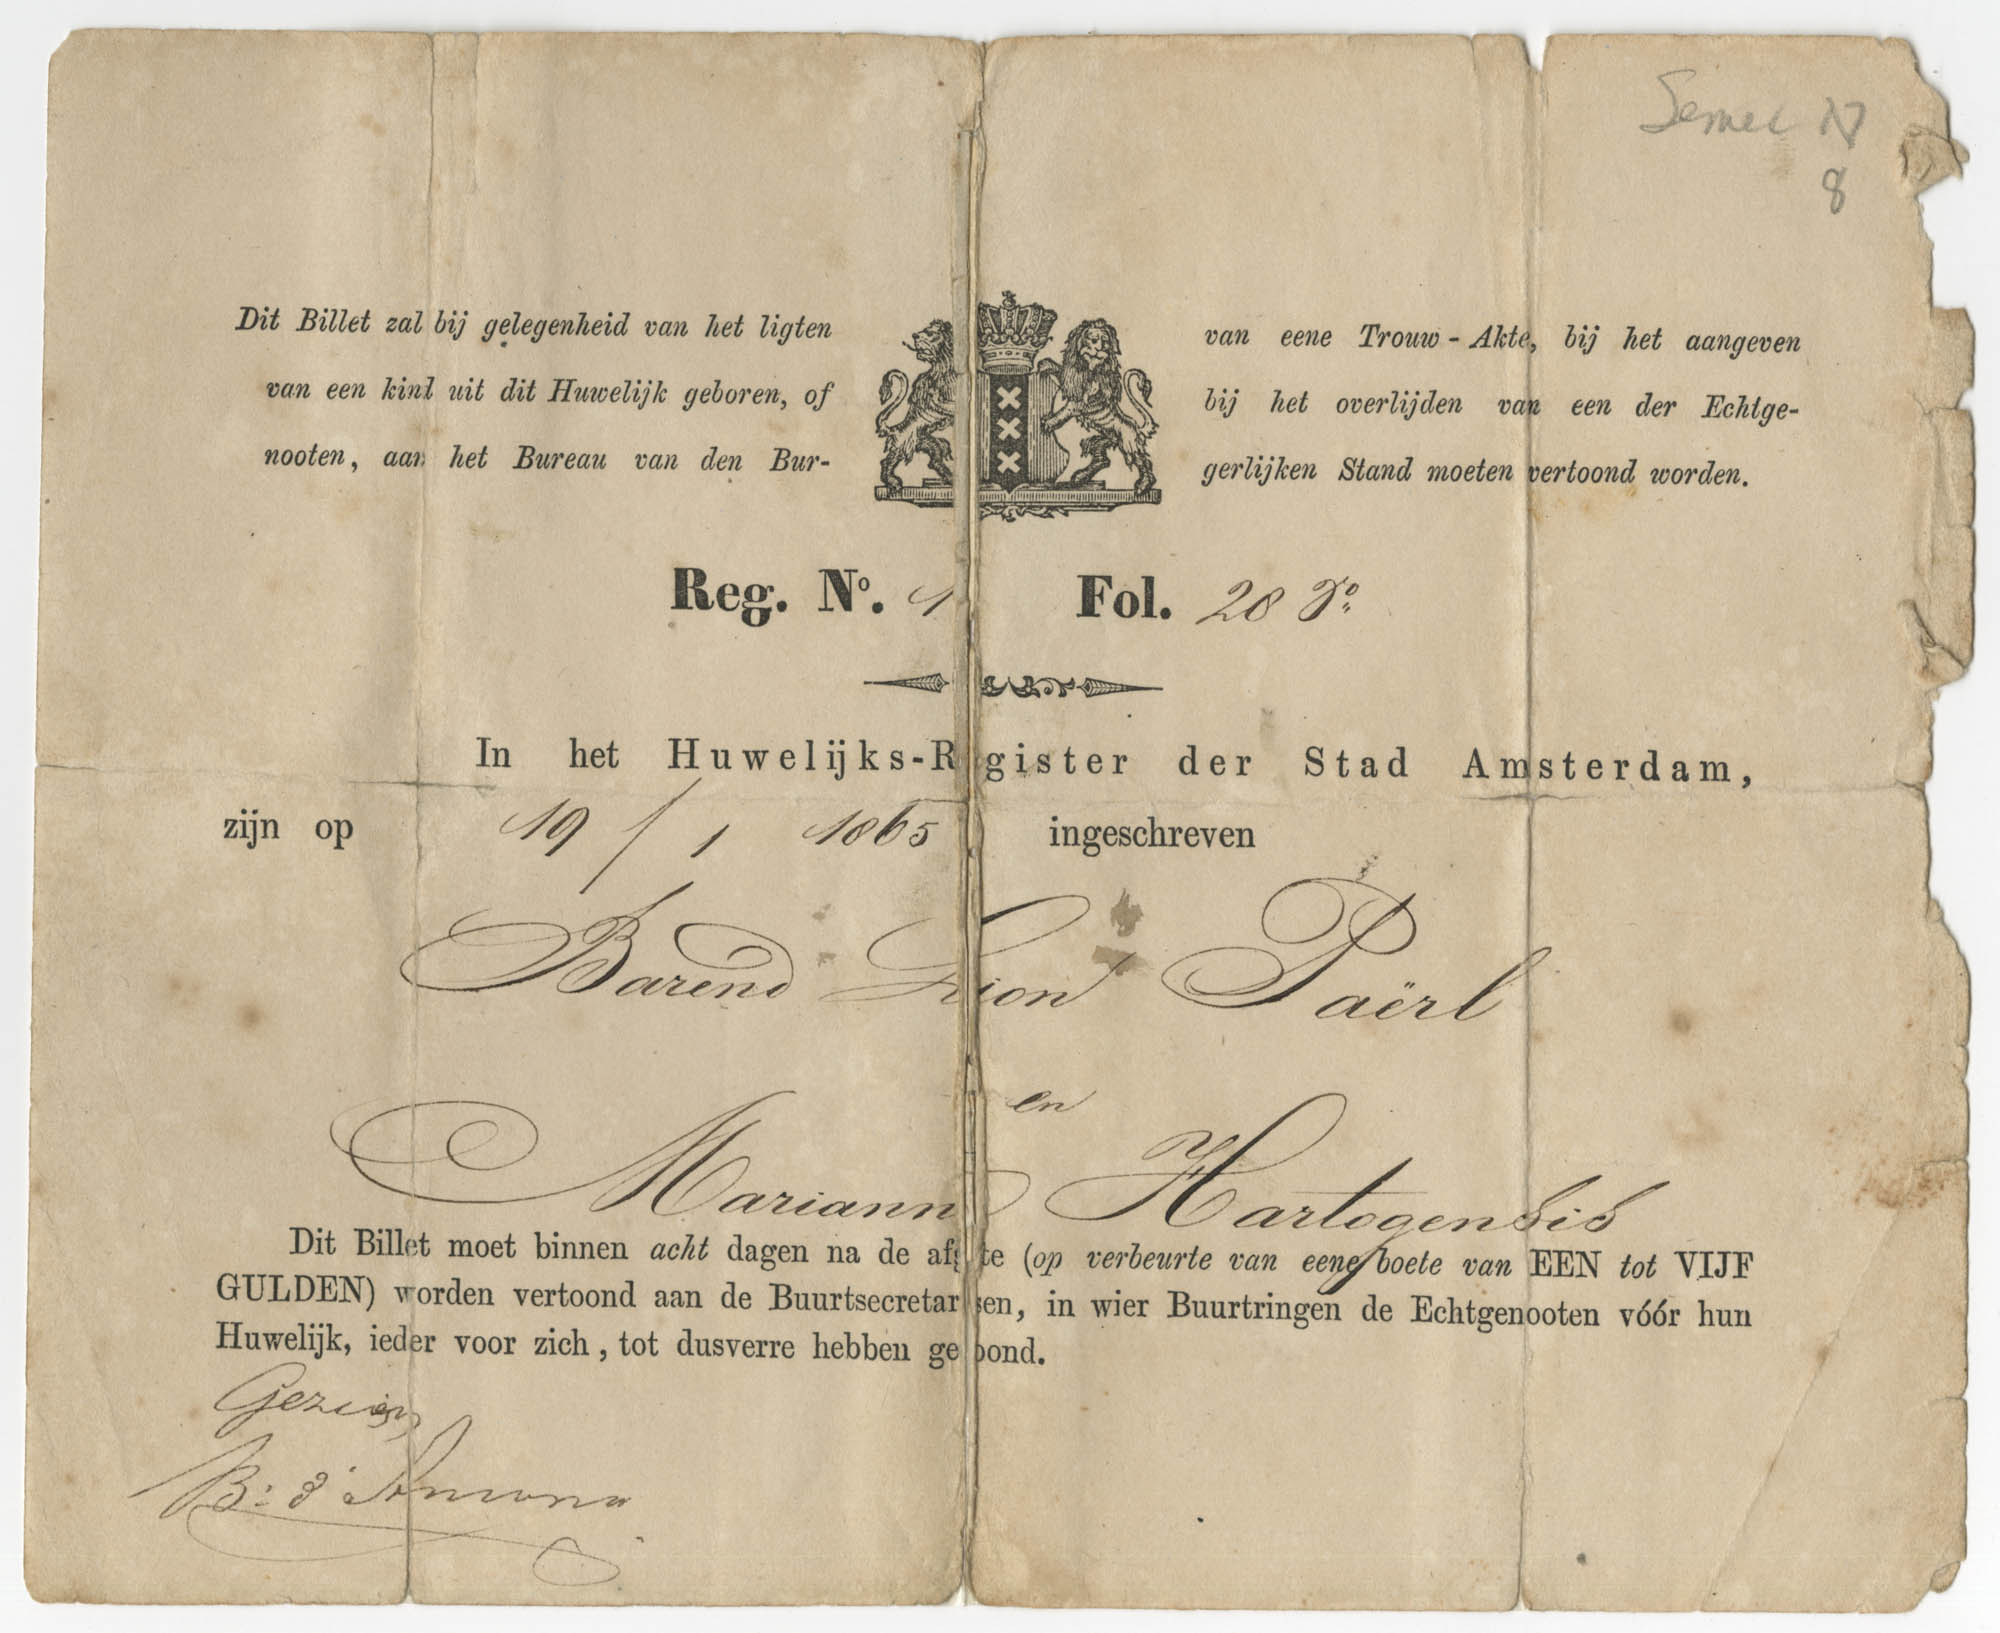 Barend Lion Paerl marriage certificate, 1865